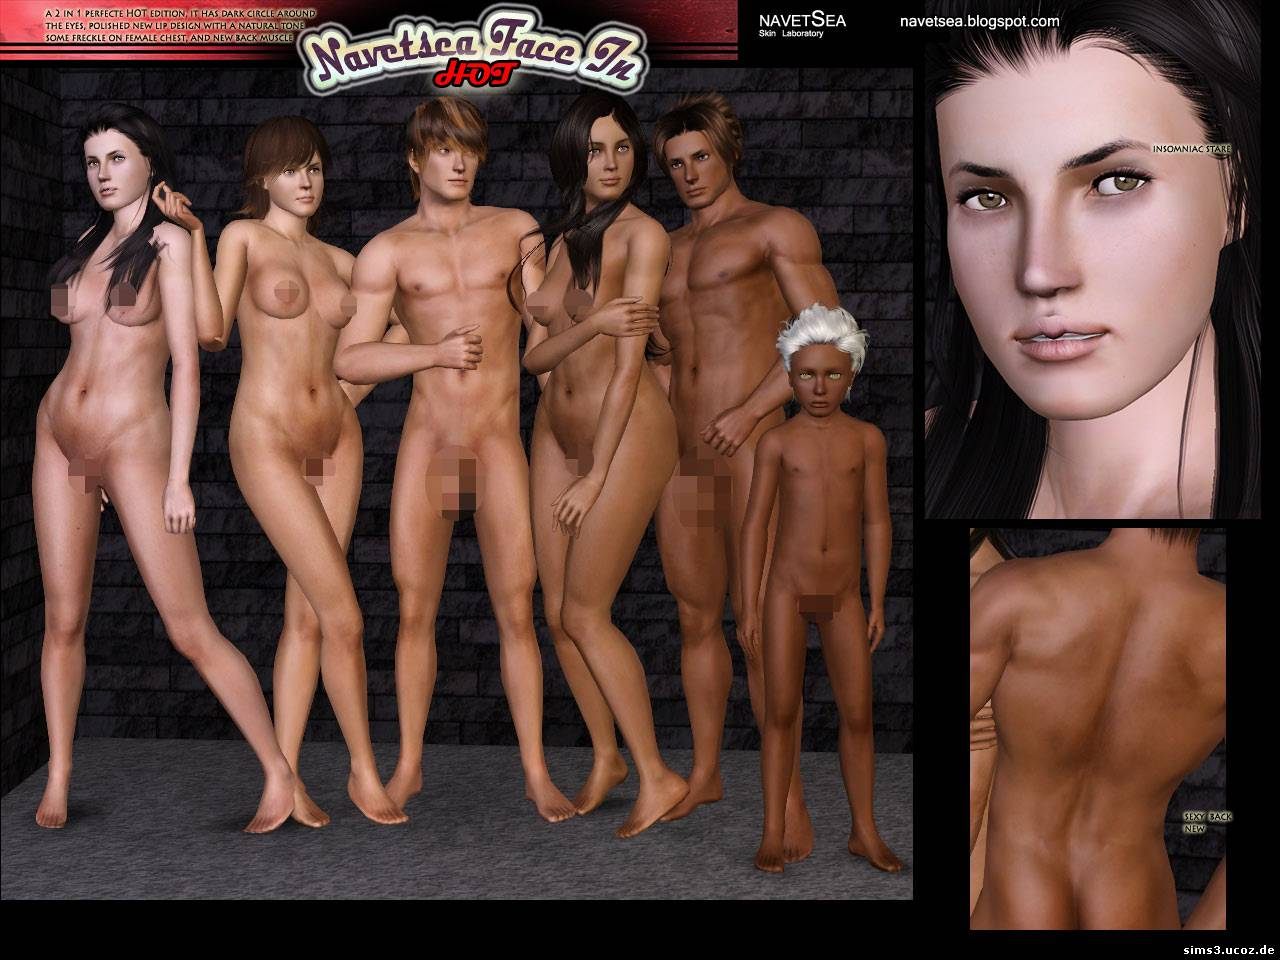 Die sims 3 nude patch naked tubes